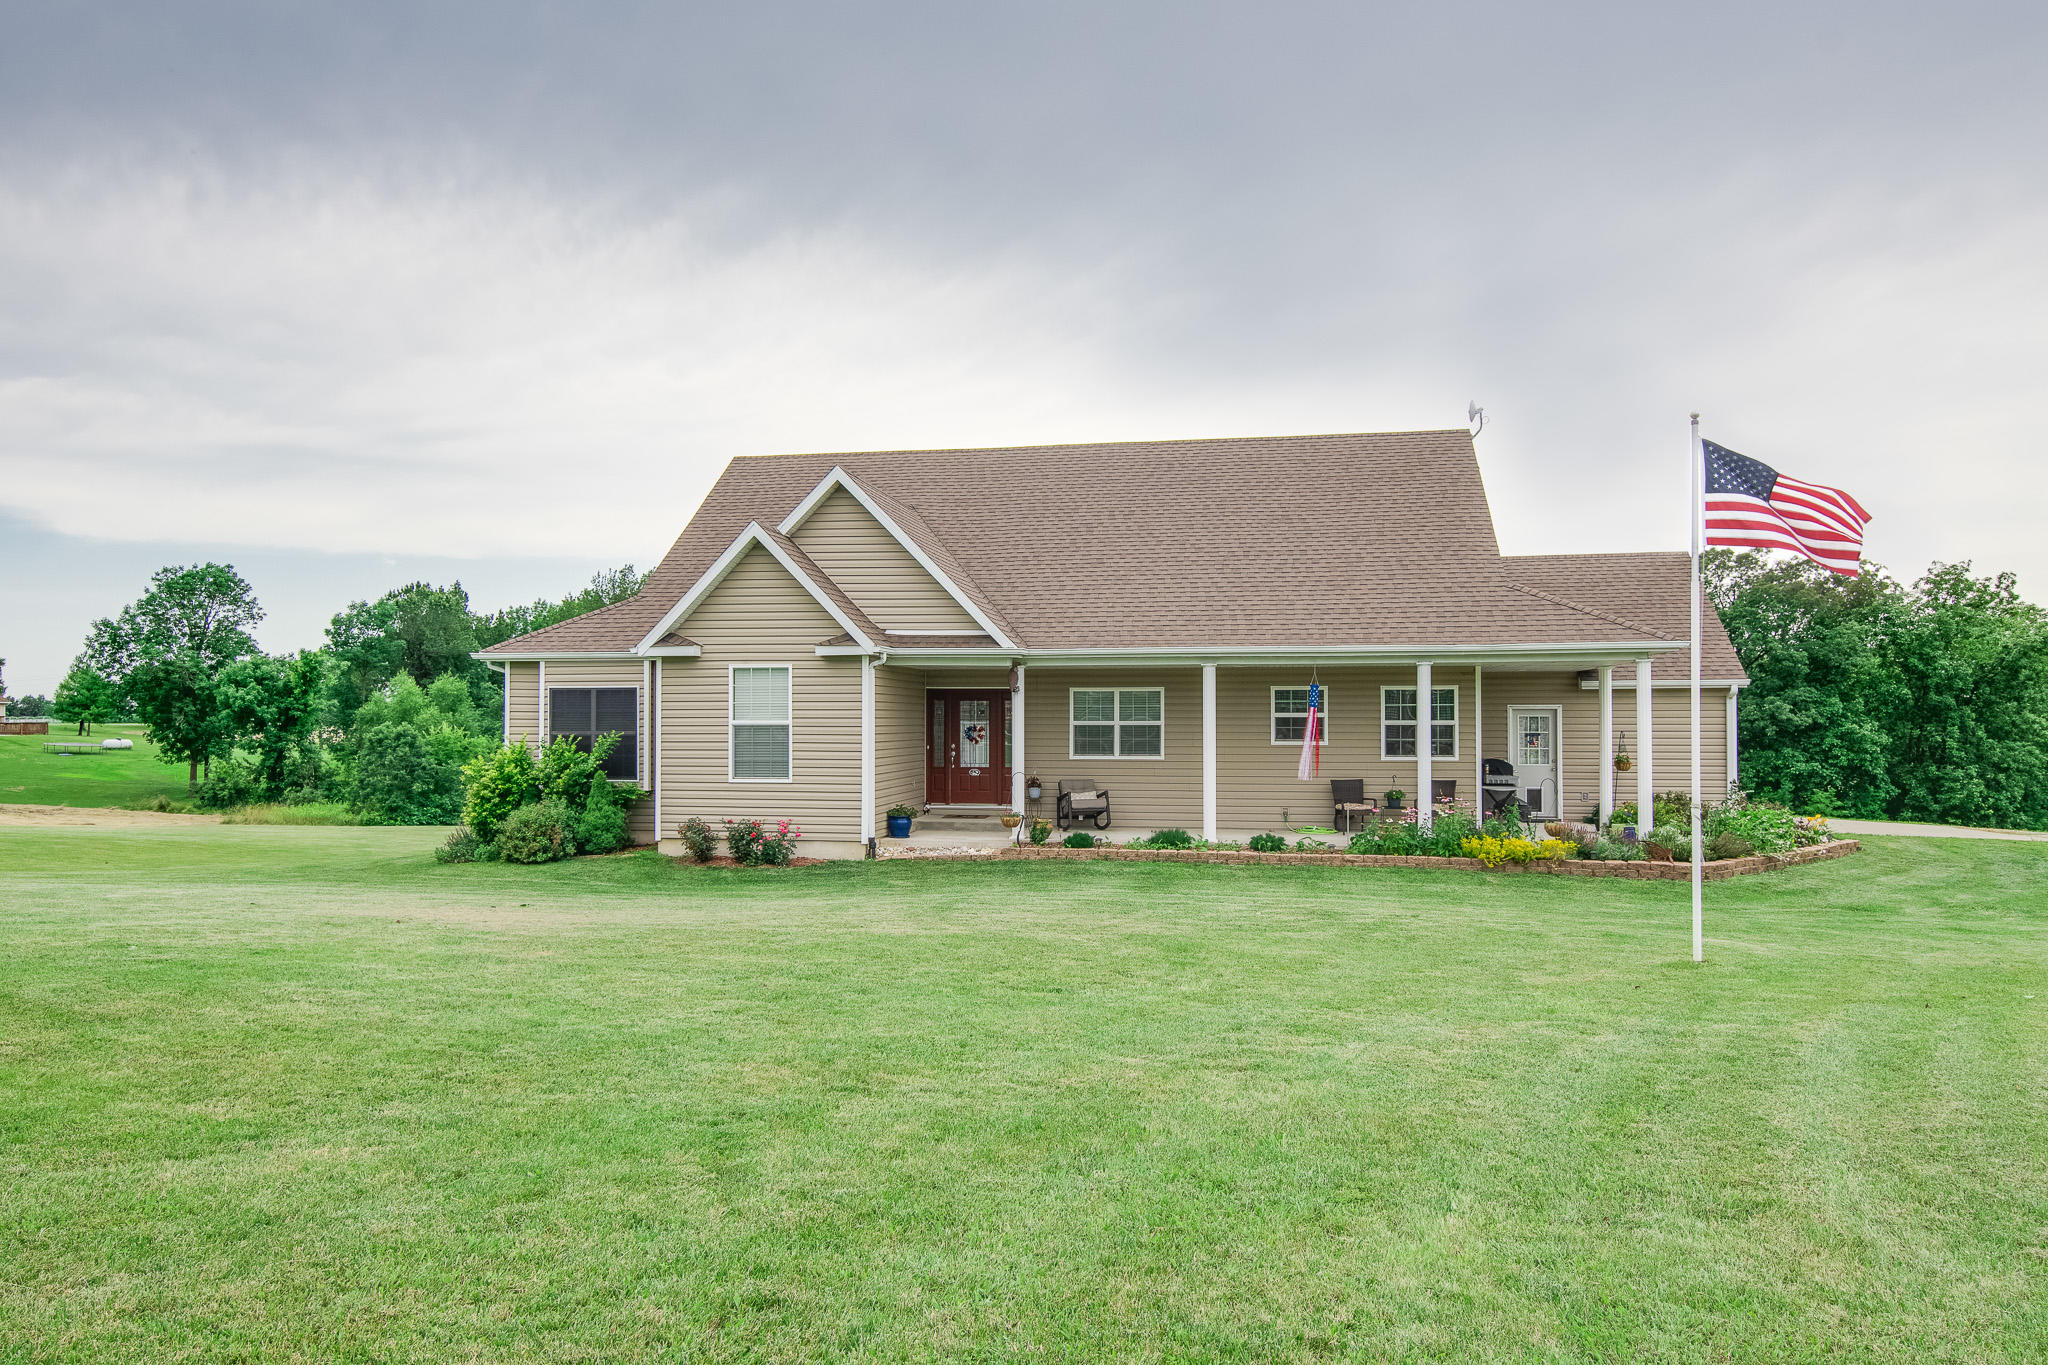 147 MARSHALL CT, FAYETTE, MO 65248 - Copper Creek Realty